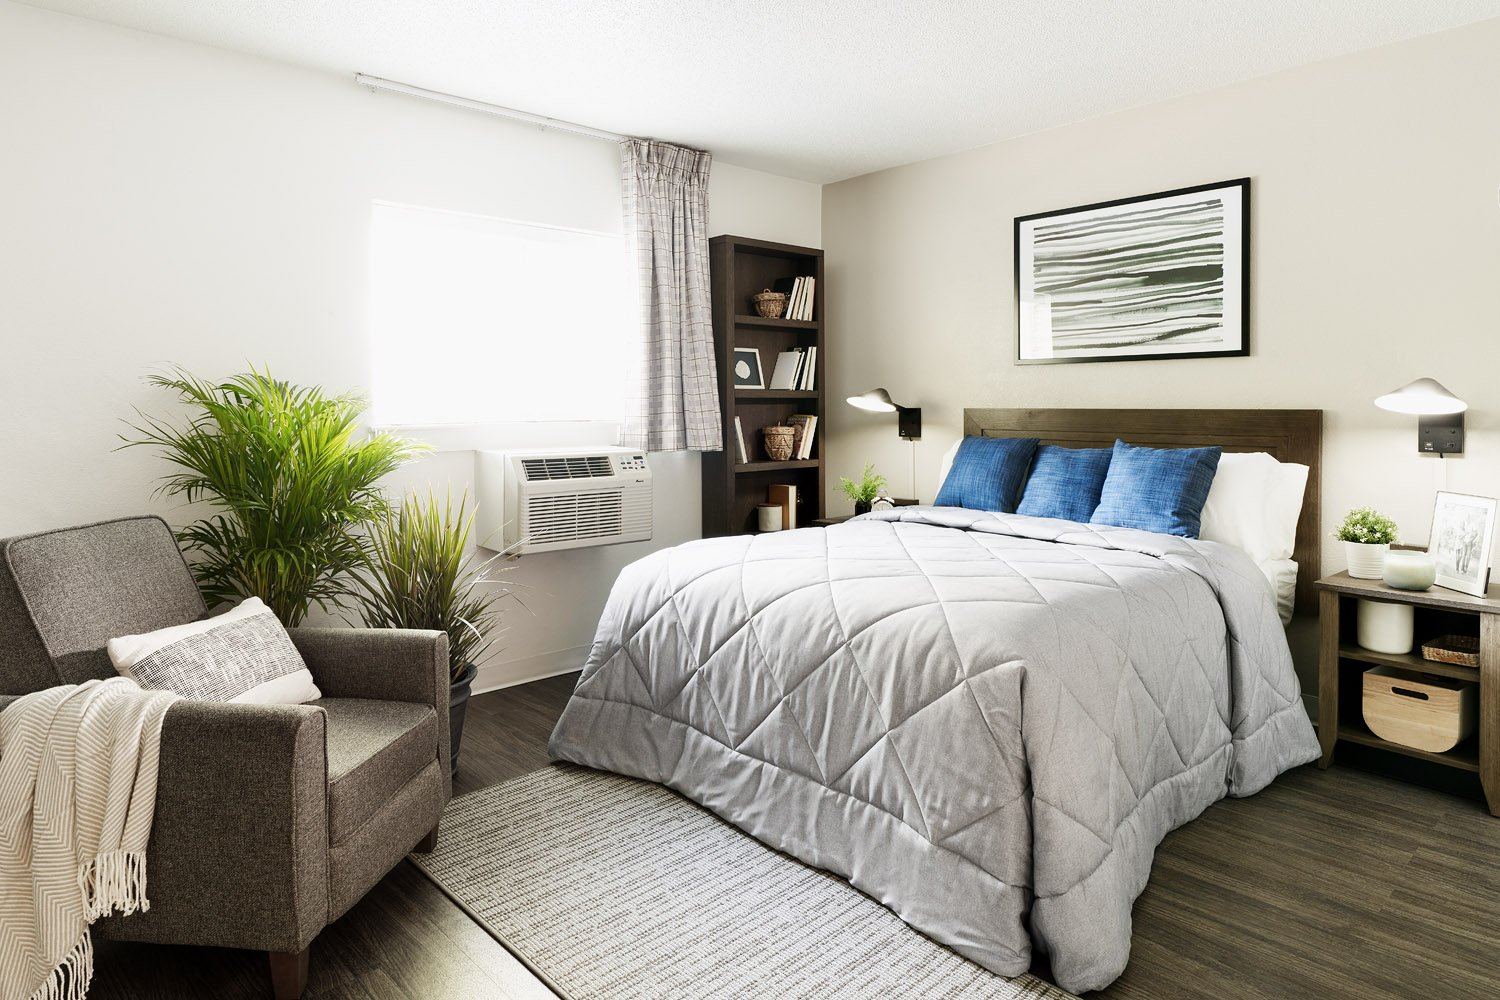 InTown Suites Extended Stay Dallas TX - North Richland Hills